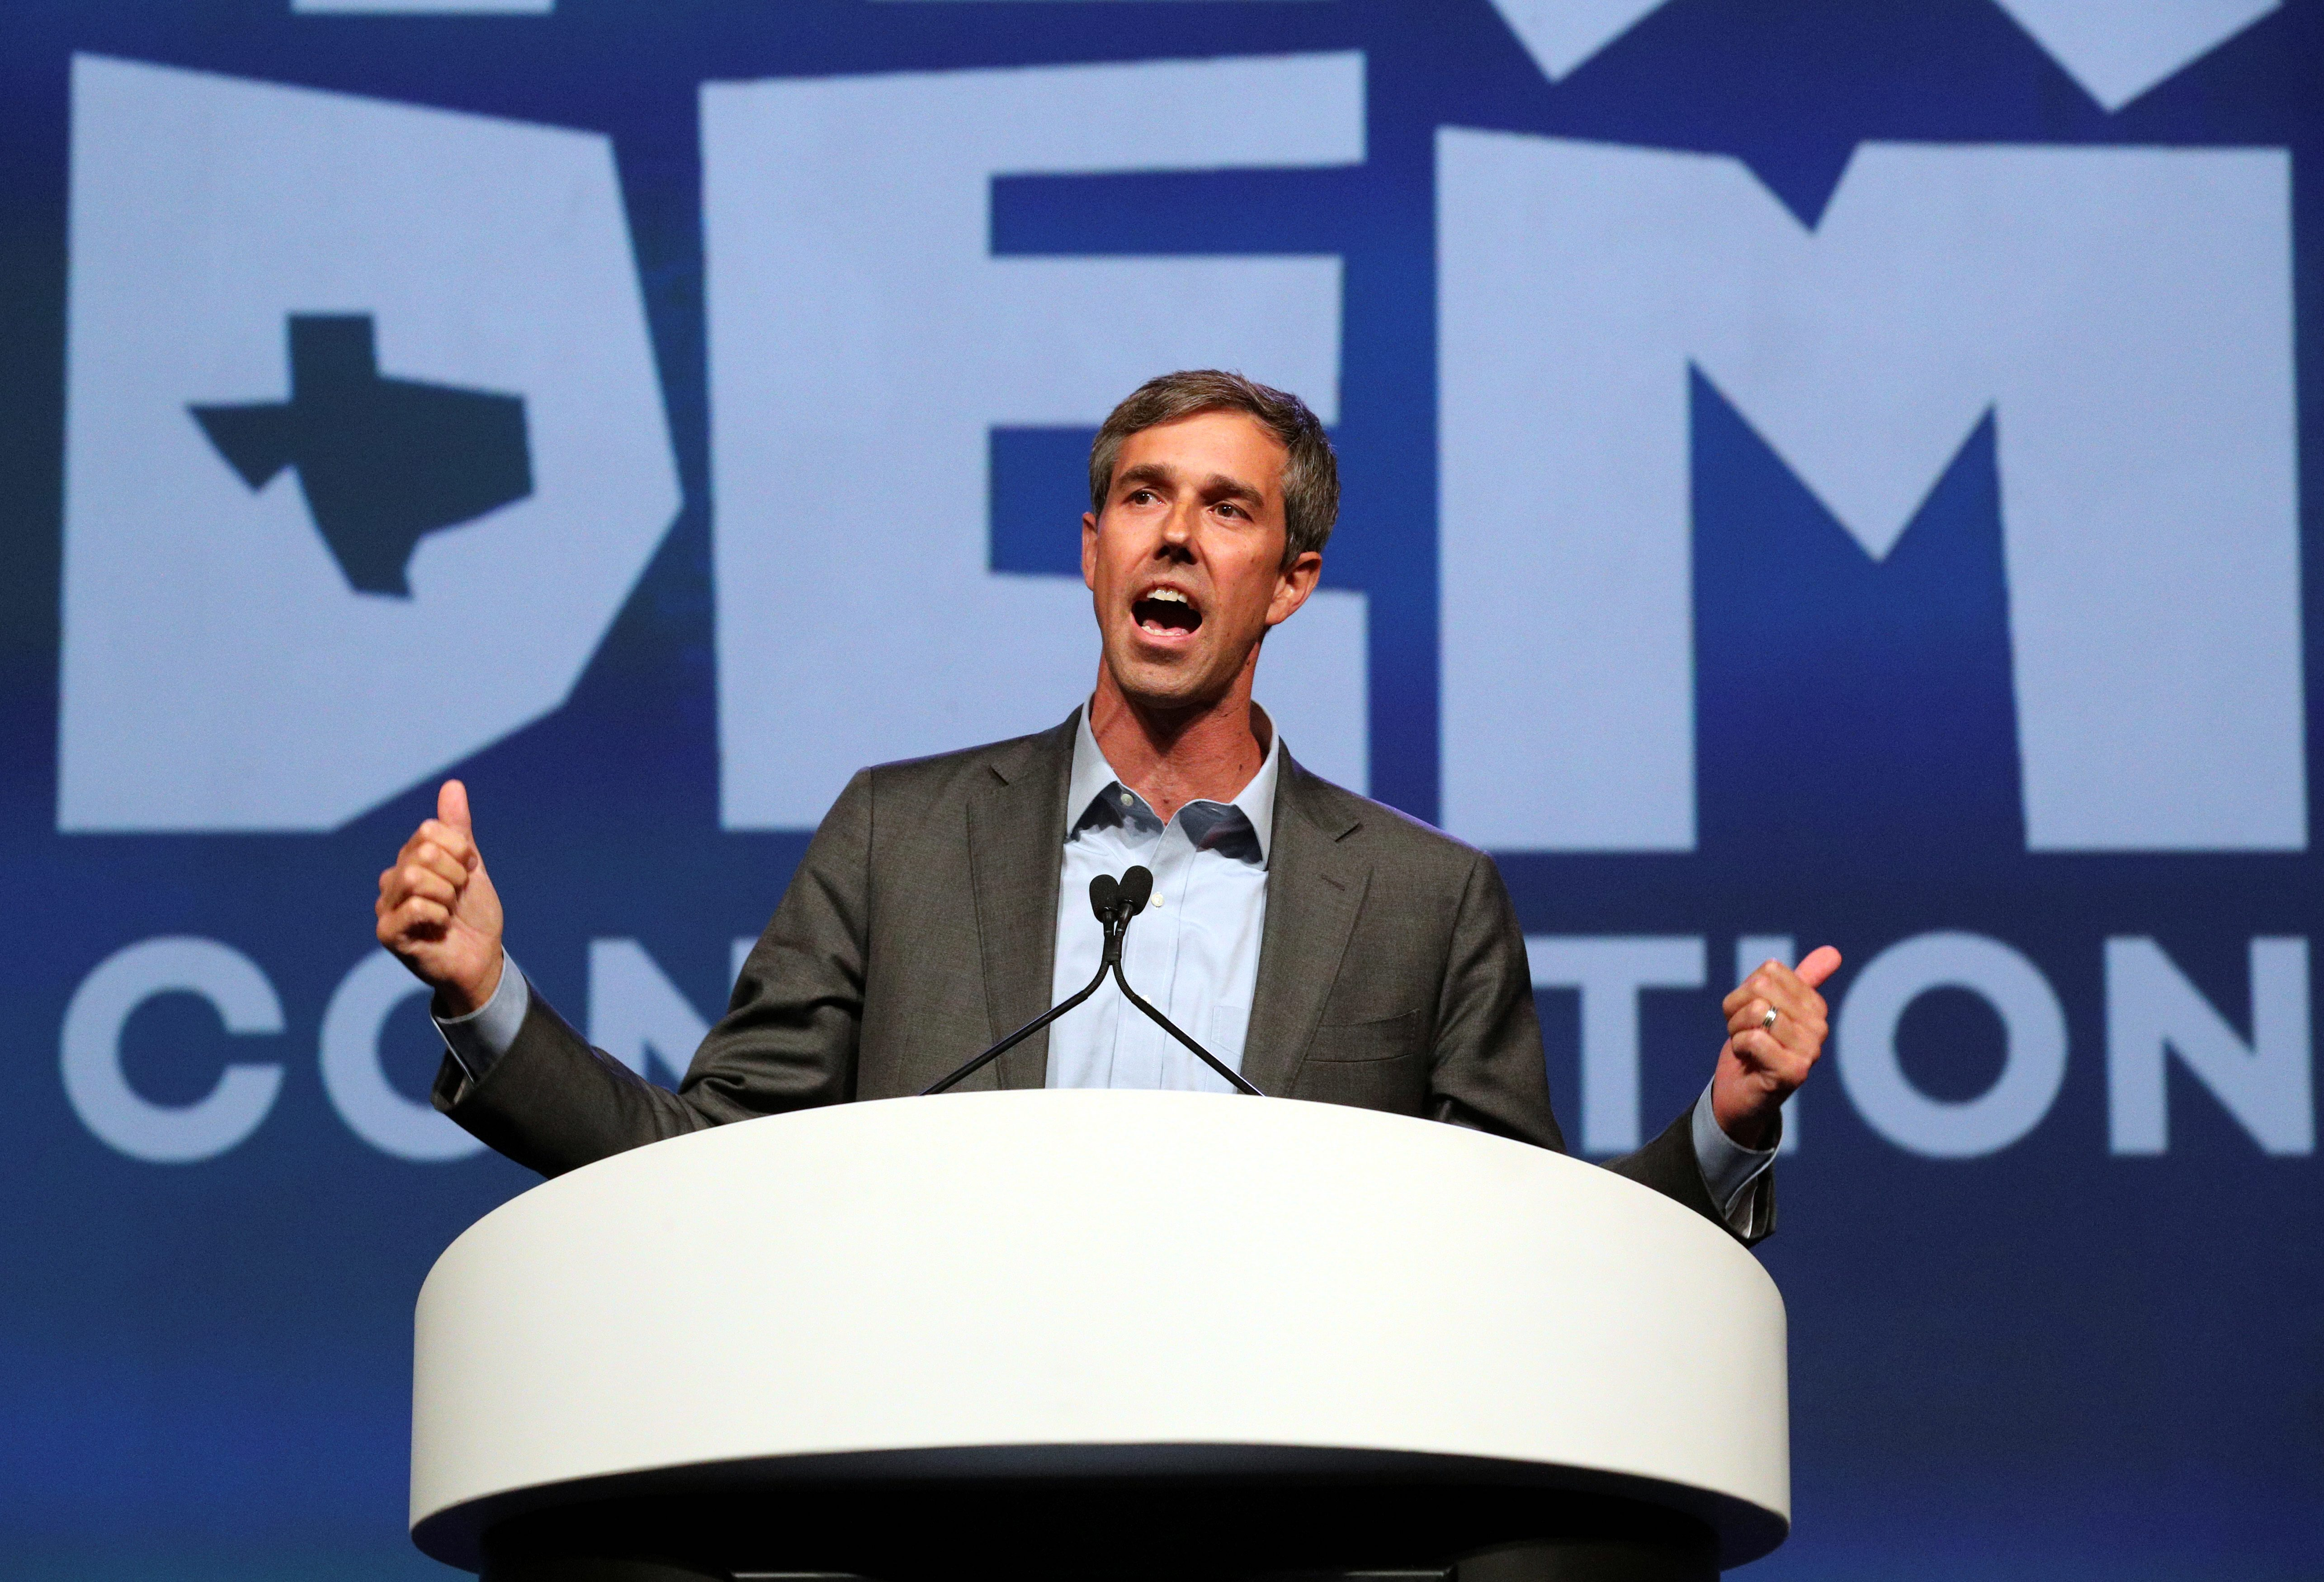 washingtontimes.com - James Varney - Beto O'Rourke getting support from Hollywood stars